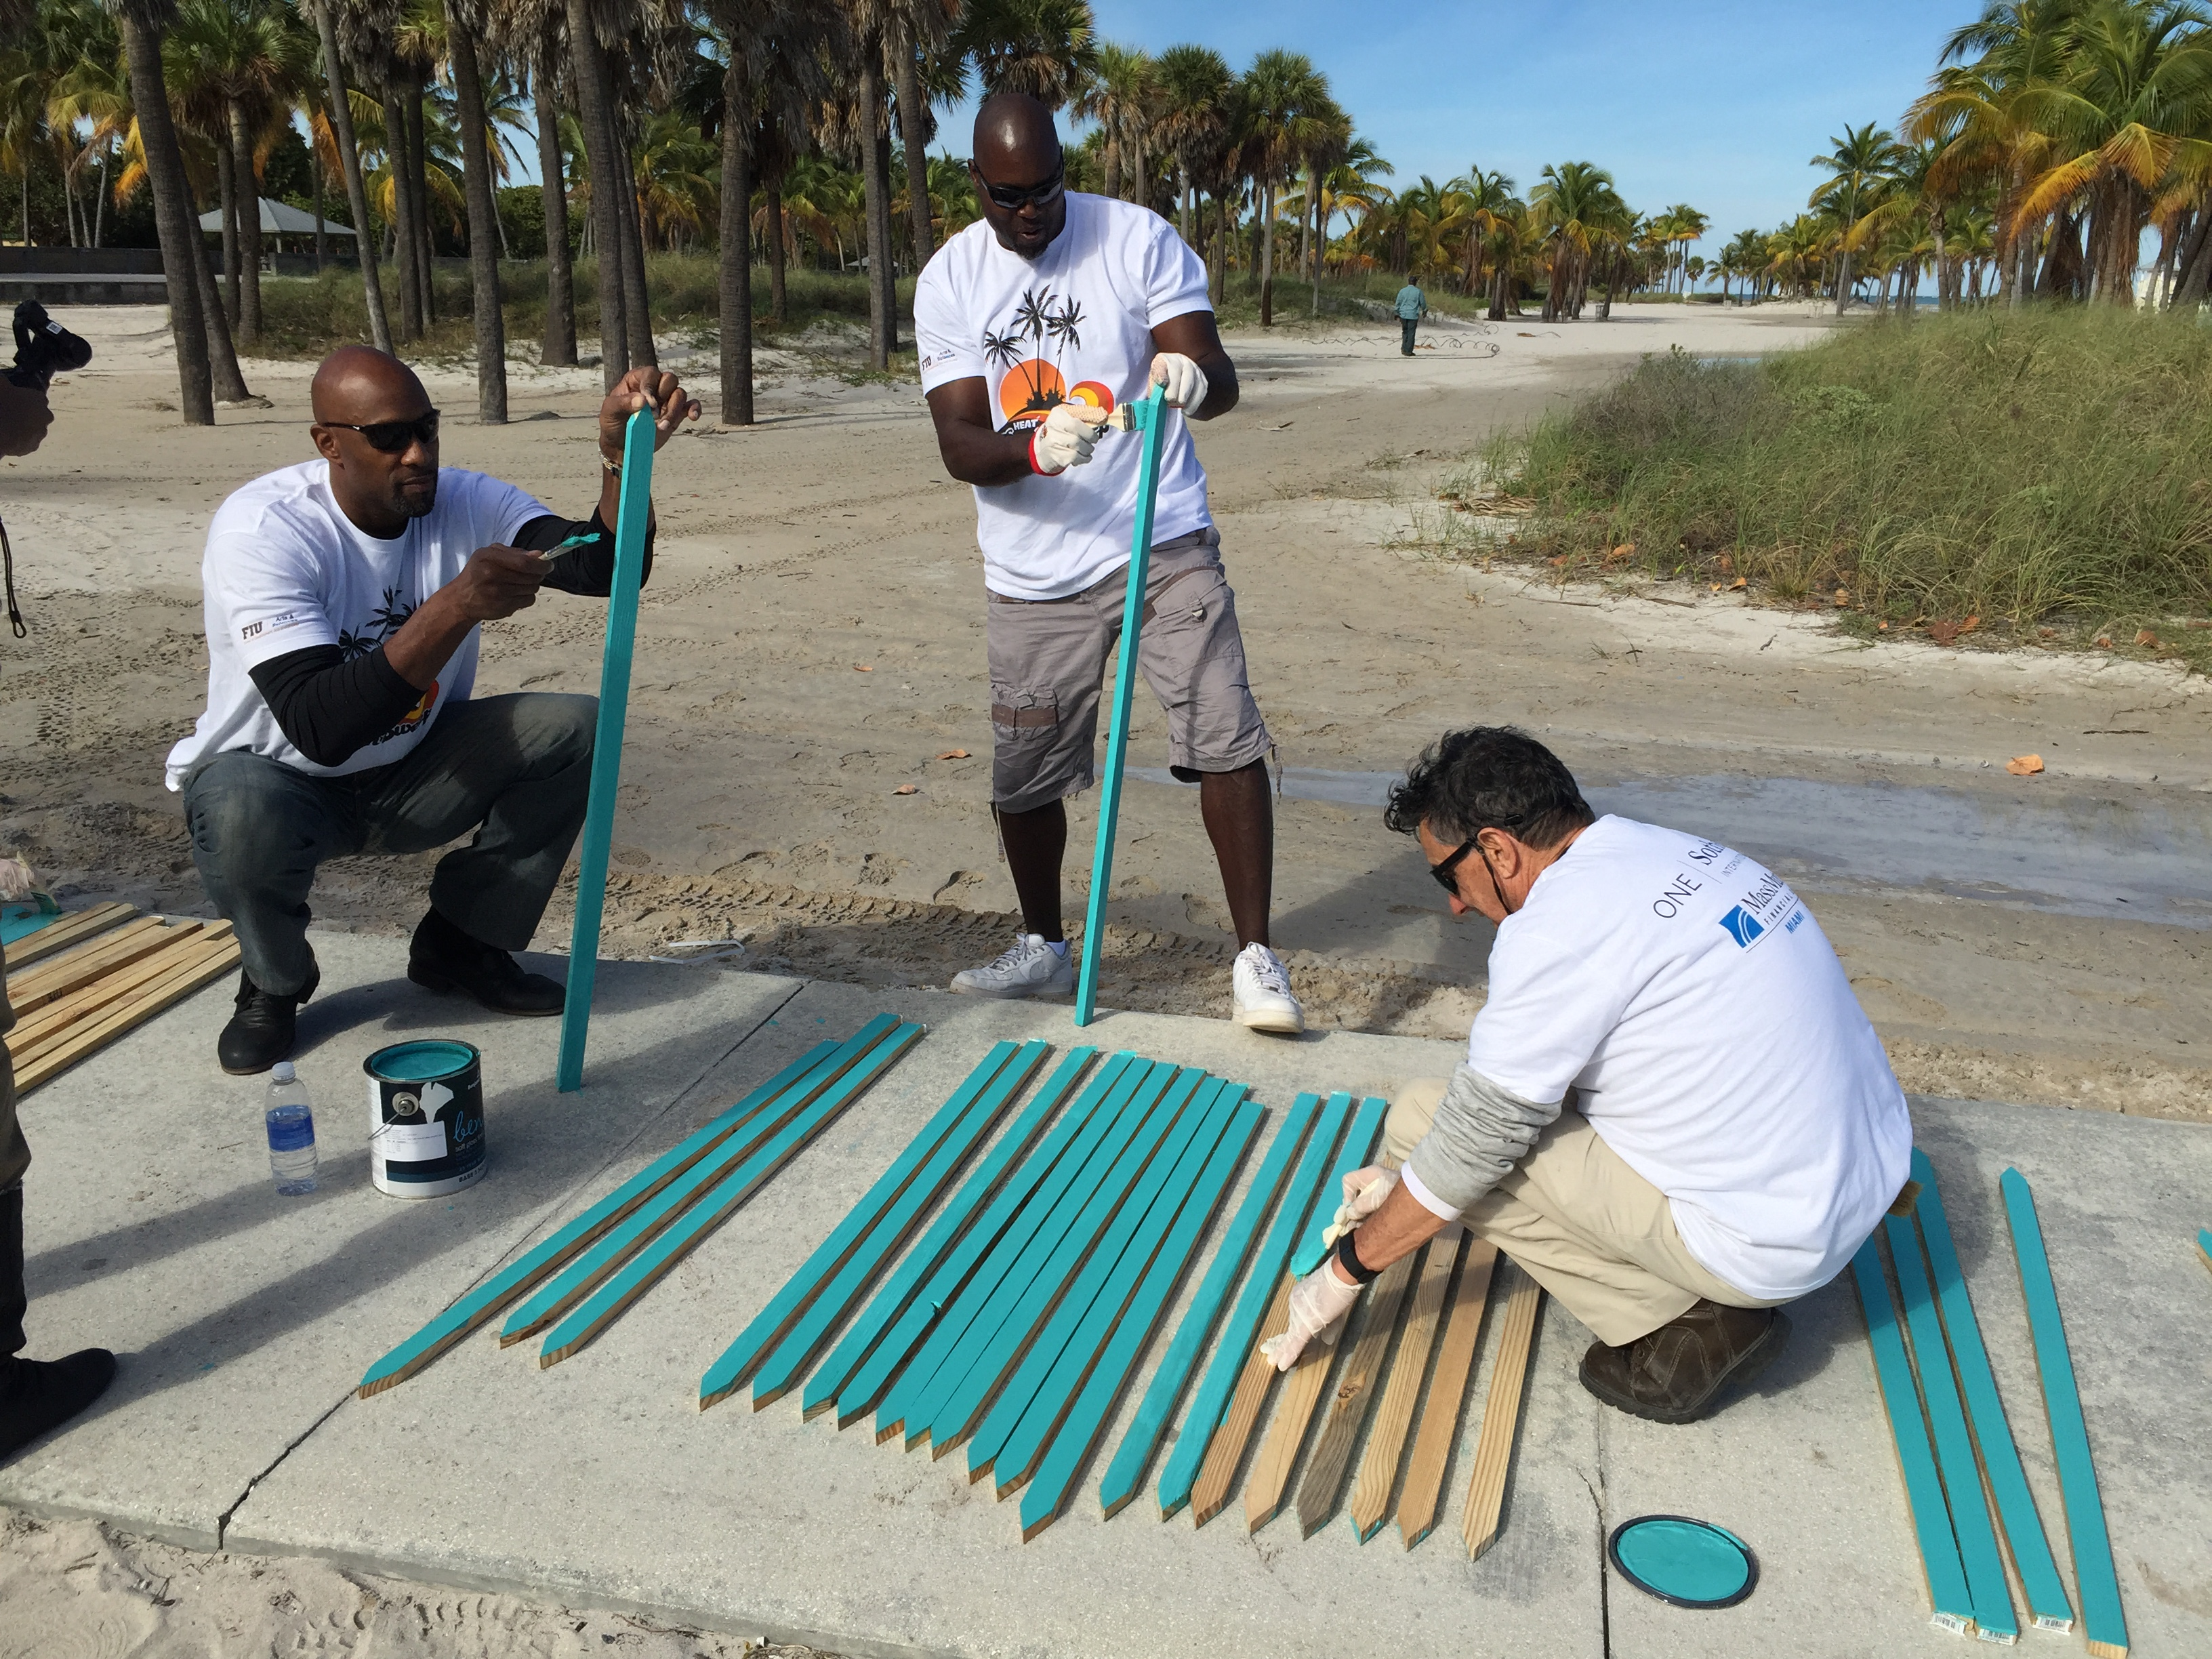 Miami Heat alumni Alonzo Mourning (left) and Glen Rice (center) helped paint and prepare sea turtle nesting sites.